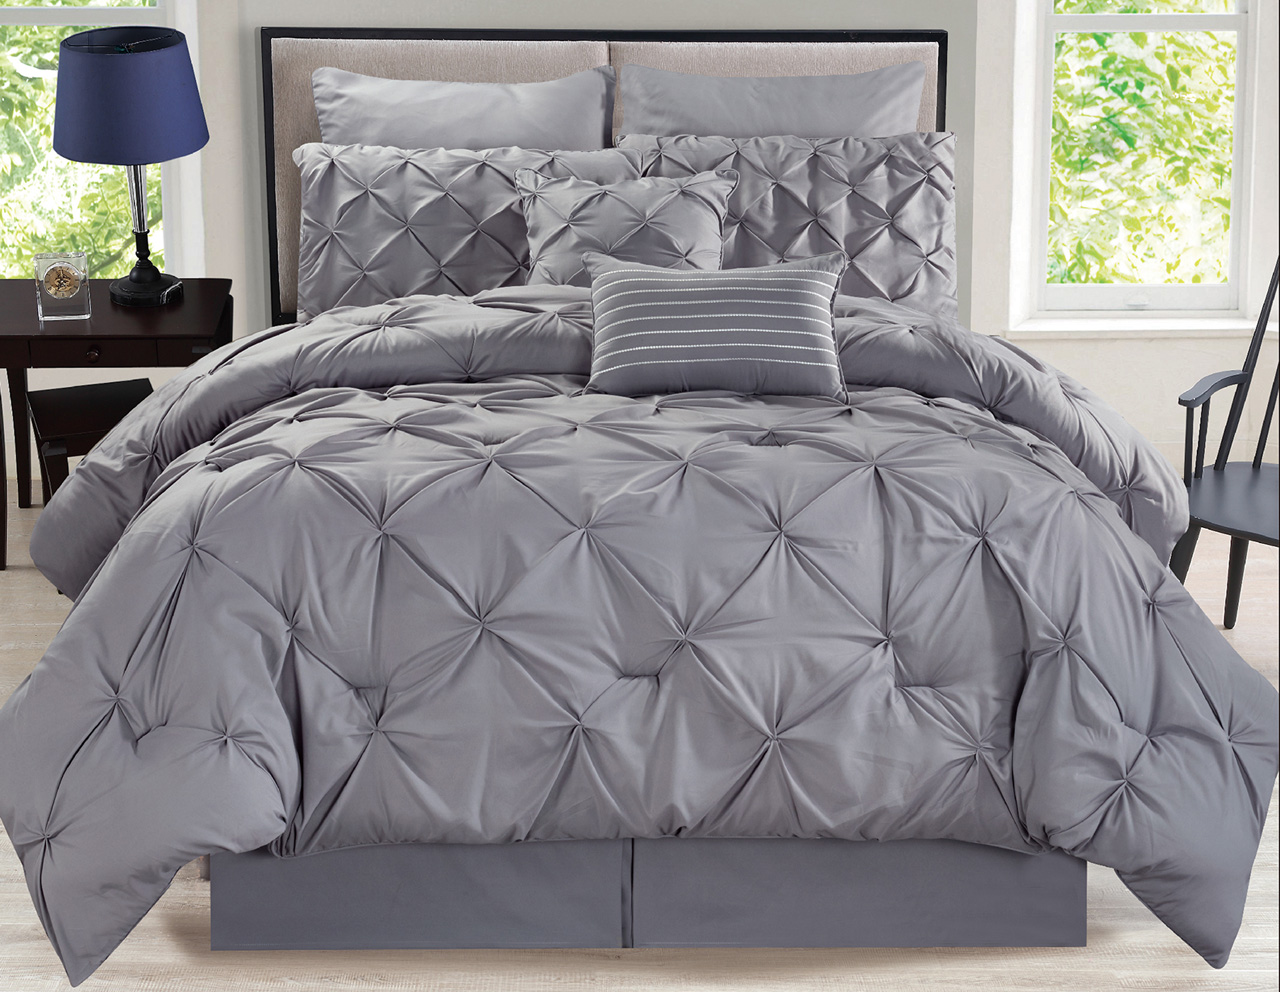 pinched stunning pattern pinch decoration piece comf fashion comforter for bedding oversized king cal grey in home bedroom ella sale floral ideas jcpenney with geneva bed maroon white rustic extraordinary black sets pleat